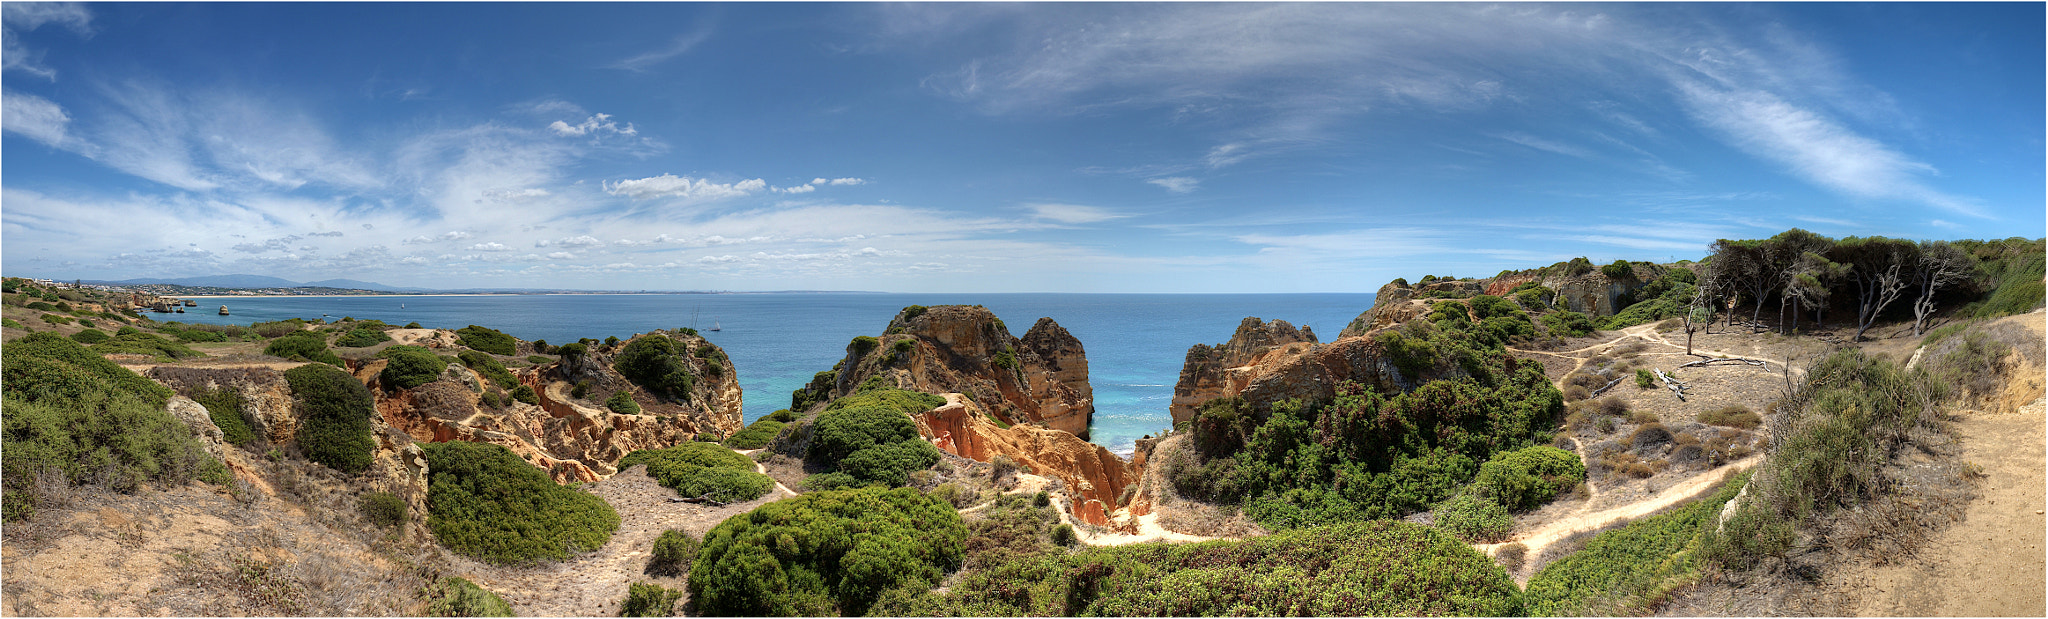 Photograph algarve by pho-t-ographic-s * on 500px